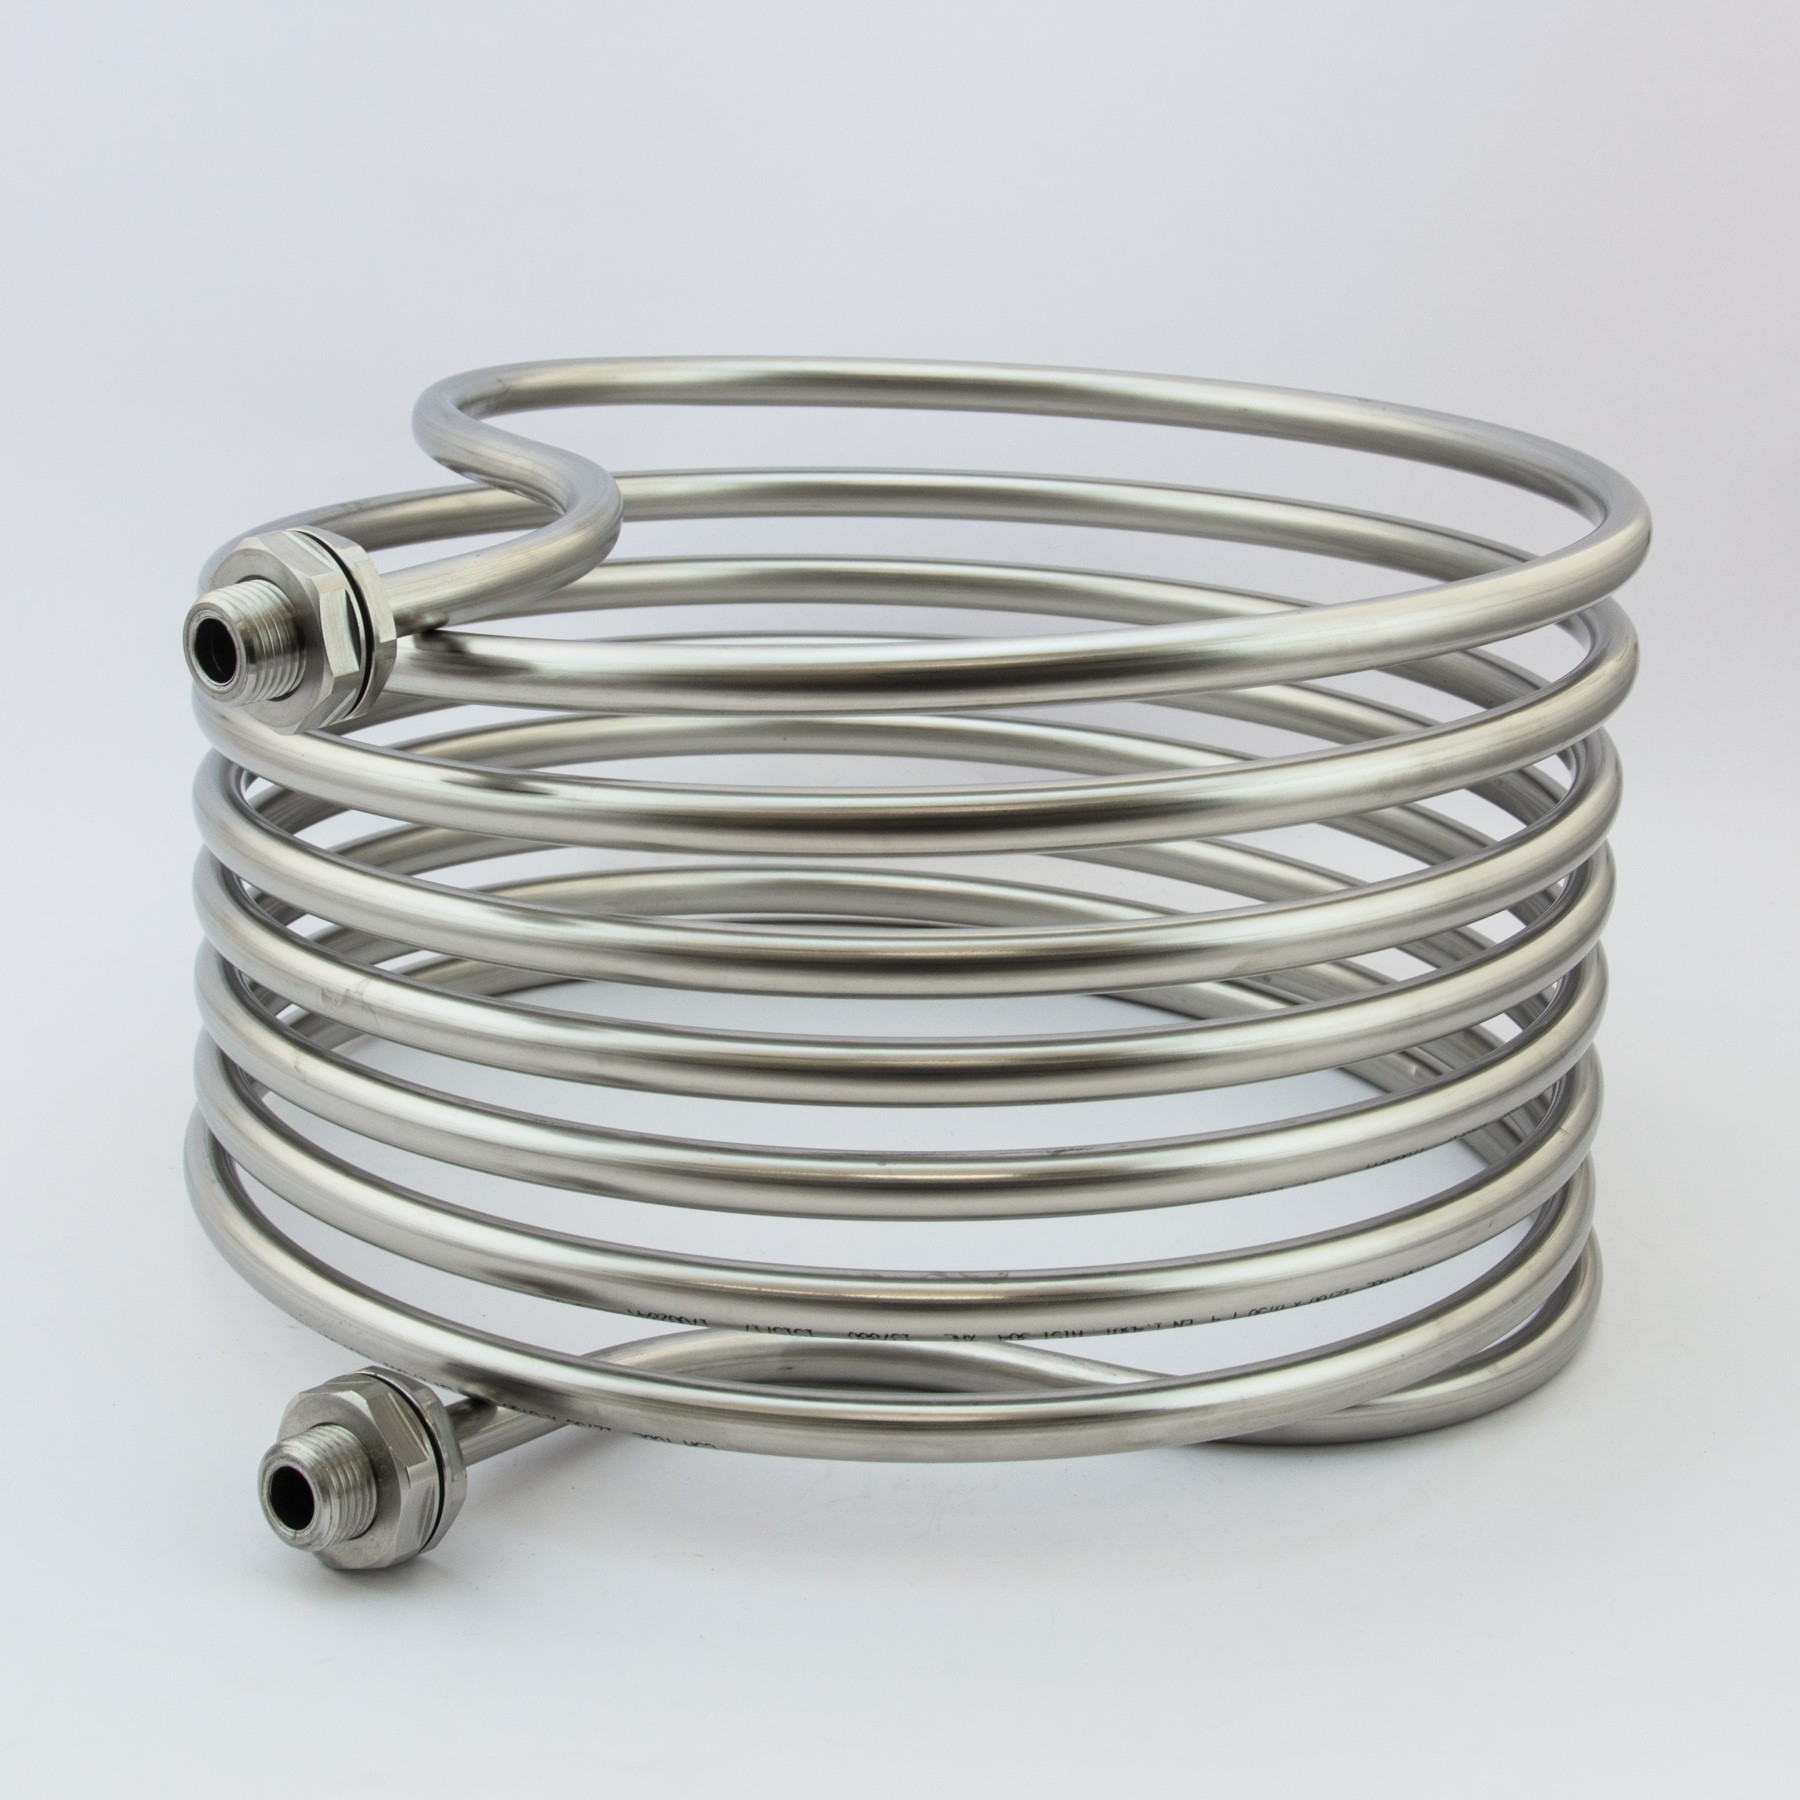 Stainless Steel HERMS Coil with BSP Fittings - 30 cm - 7.5m